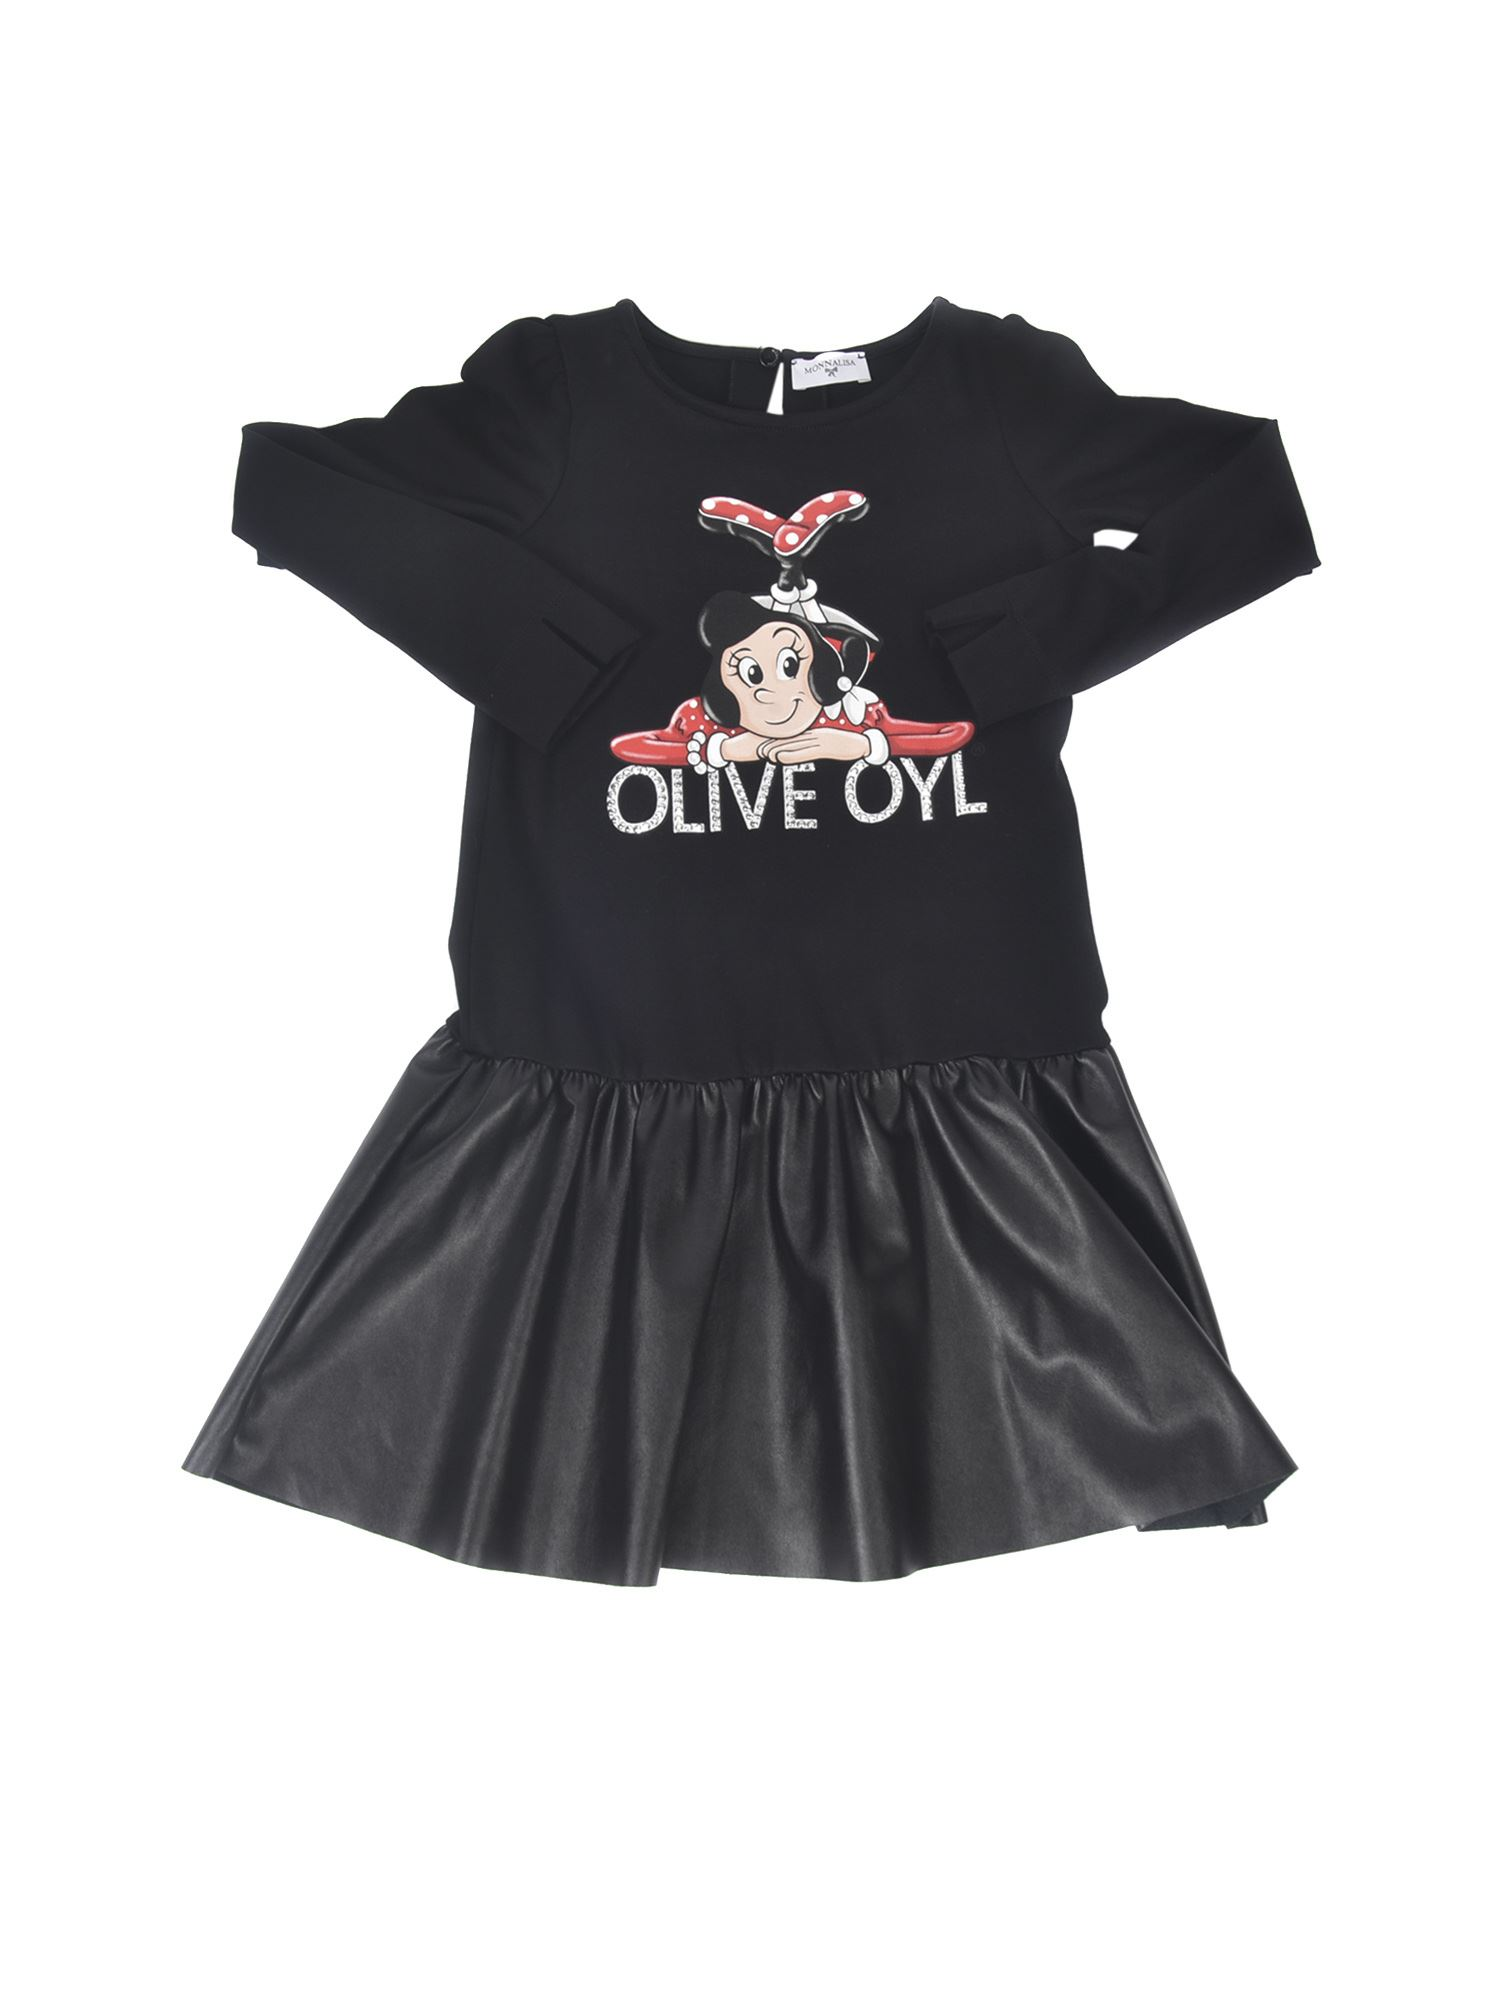 Monnalisa OLIVE OYL DRESS IN BLACK